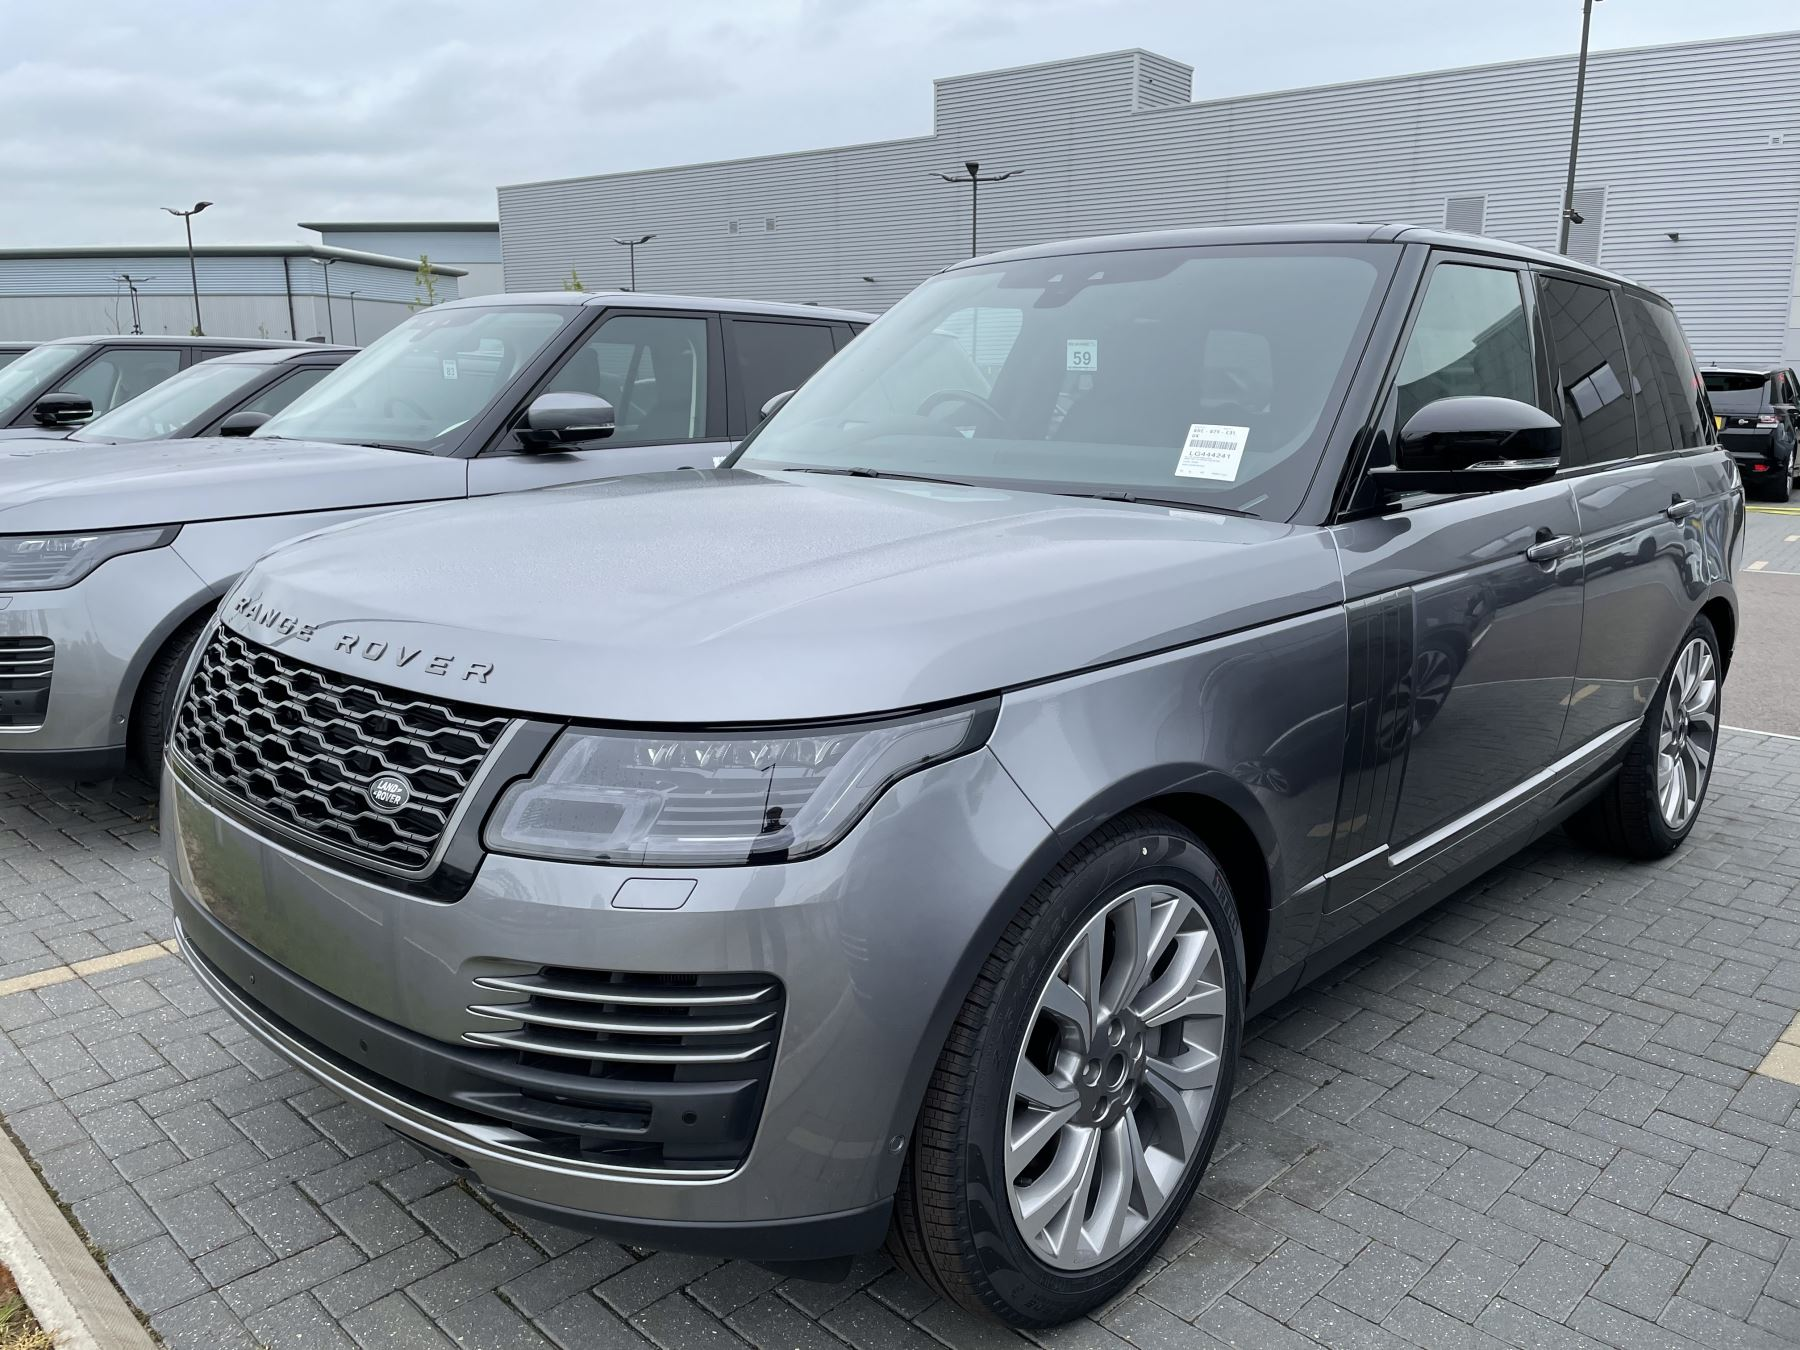 Land Rover Range Rover 3.0 D300 Autobiography image 1